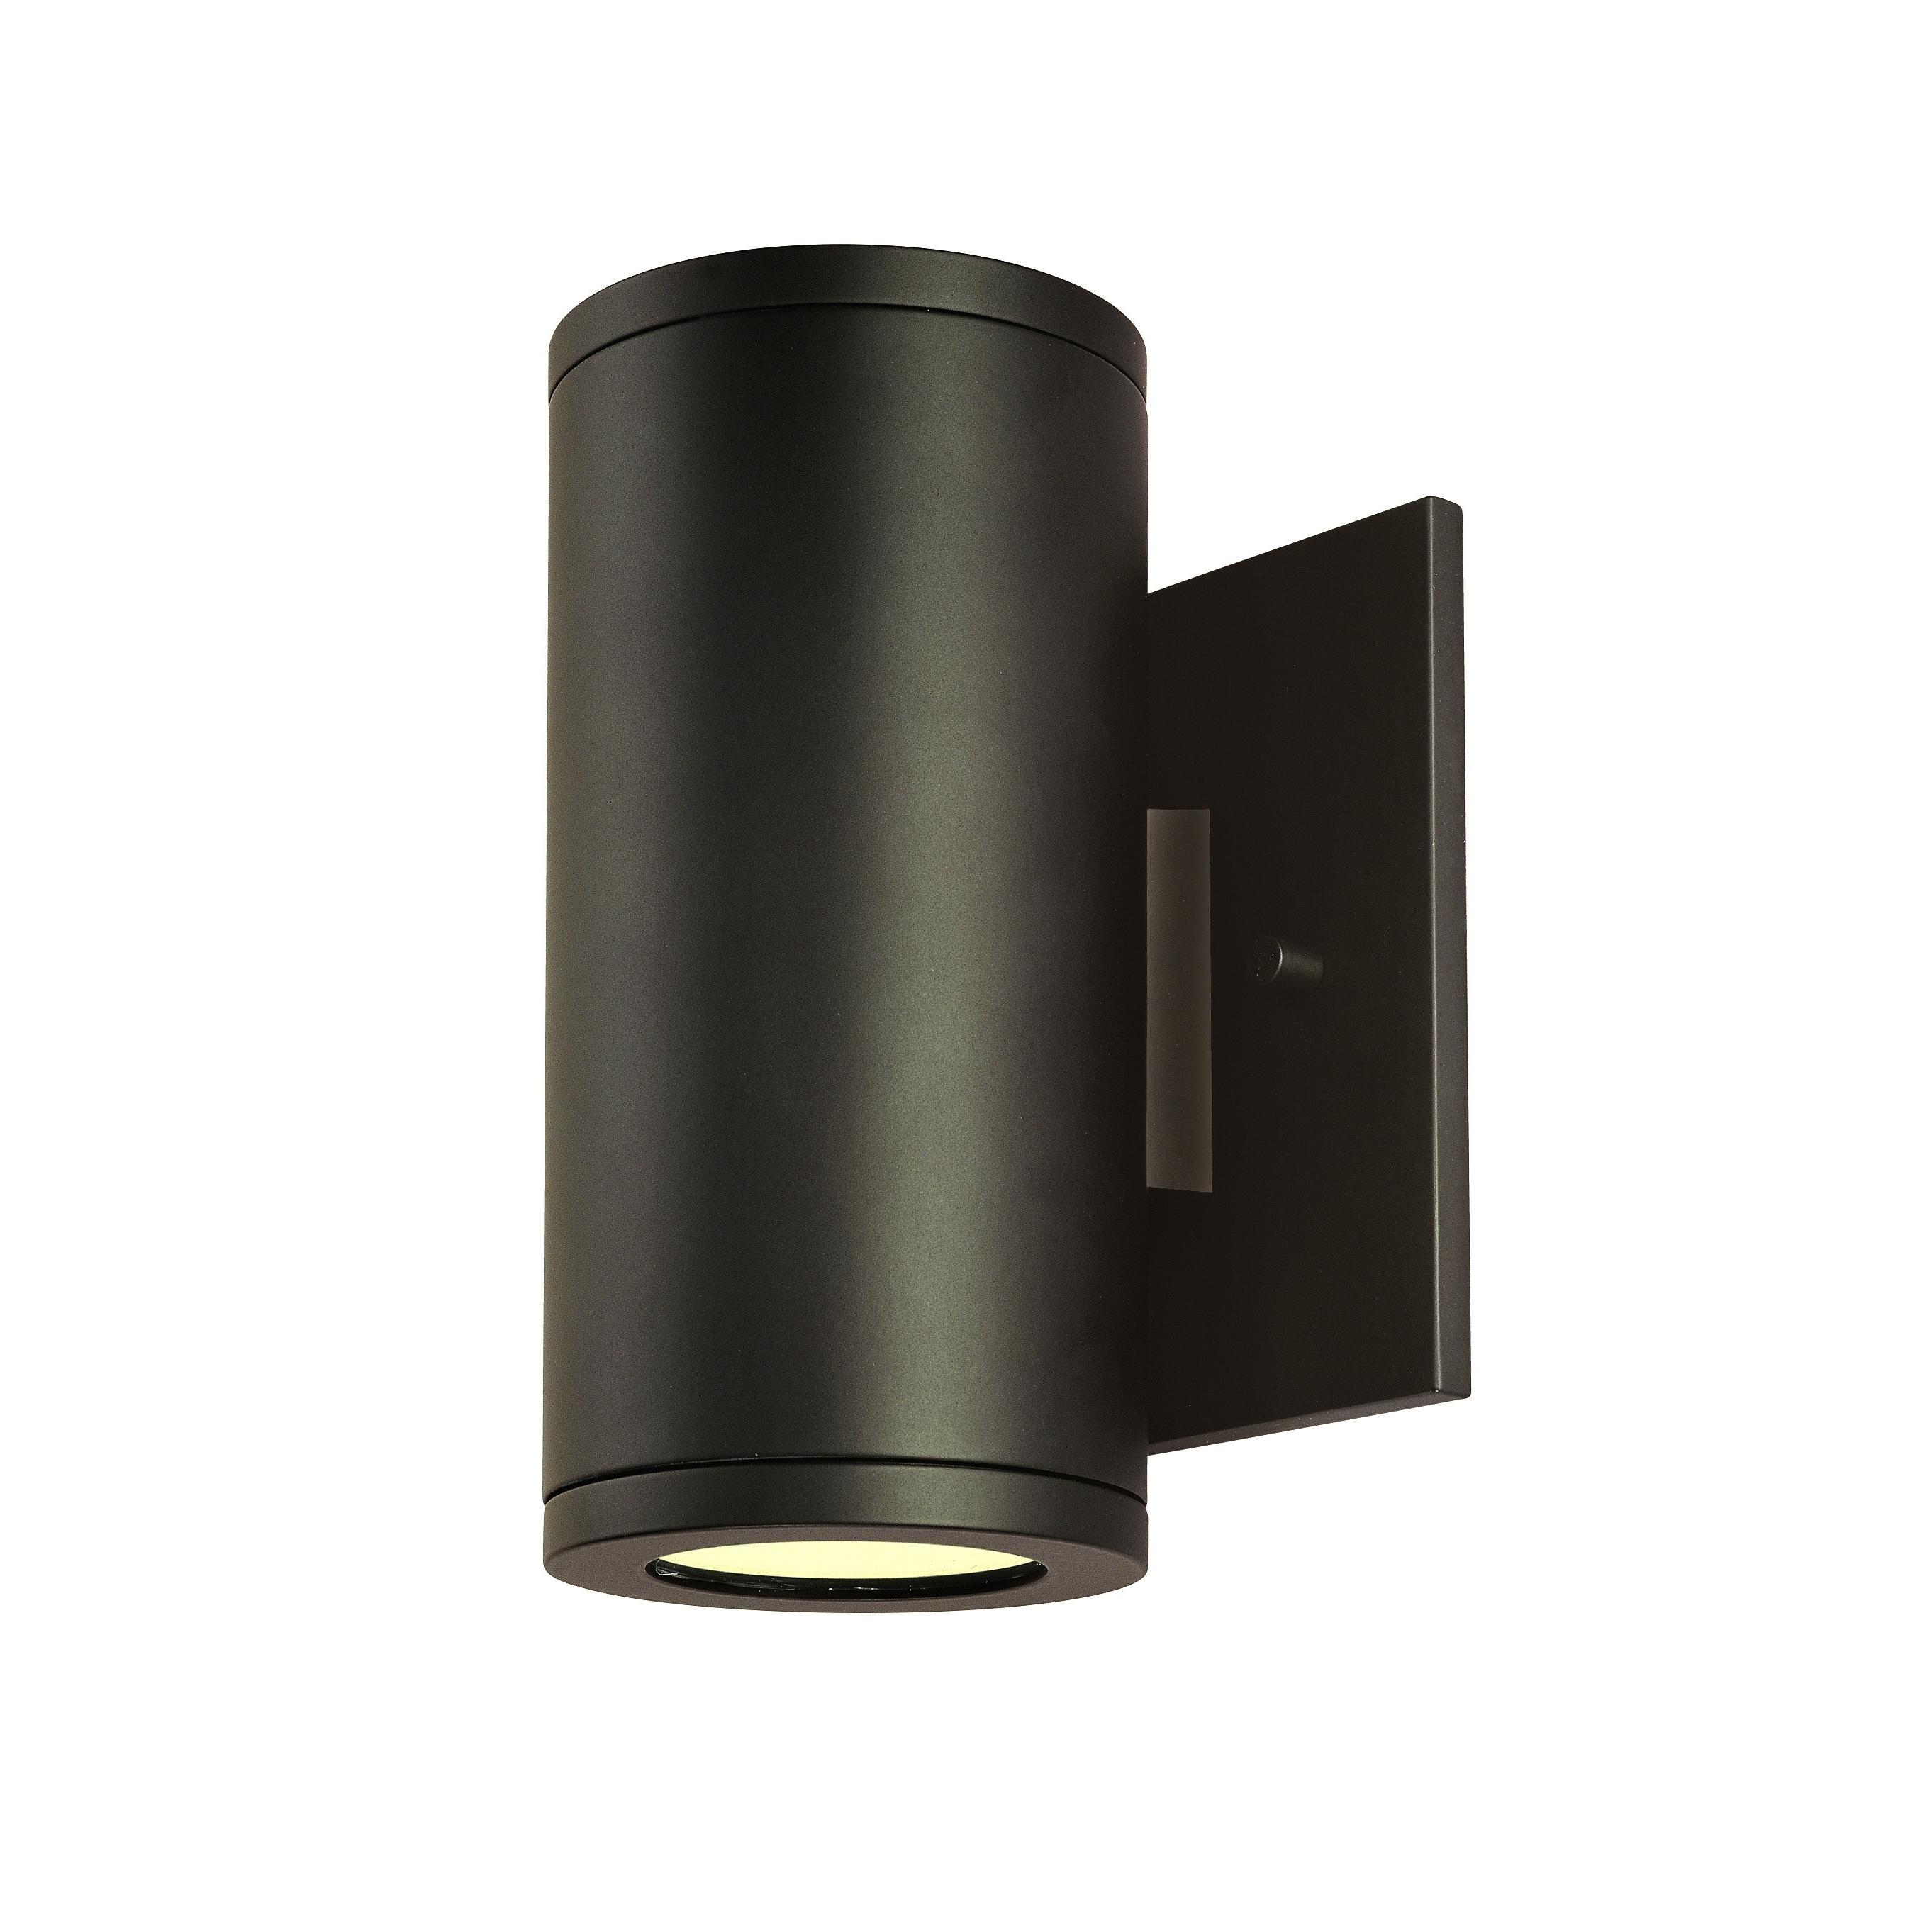 Trendy 36 Outdoor Commercial Wall Sconces, Wall Sconces Wall Sconce Intended For Modern Garden Porch Light Fixtures At Wayfair (View 19 of 20)